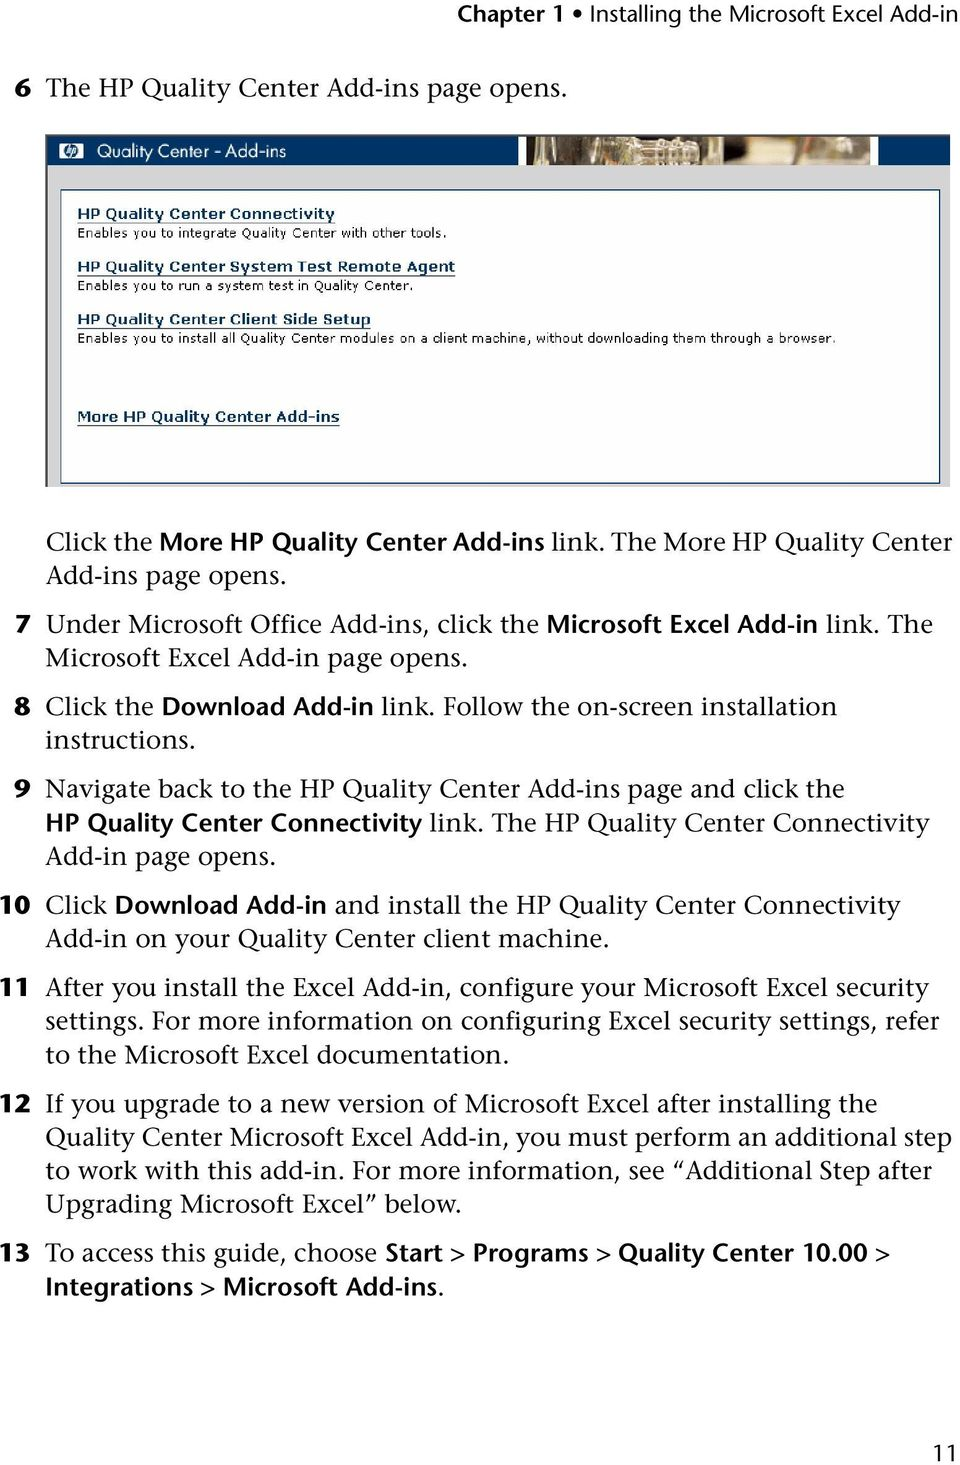 9 Navigate back to the HP Quality Center Add-ins page and click the HP Quality Center Connectivity link. The HP Quality Center Connectivity Add-in page opens.